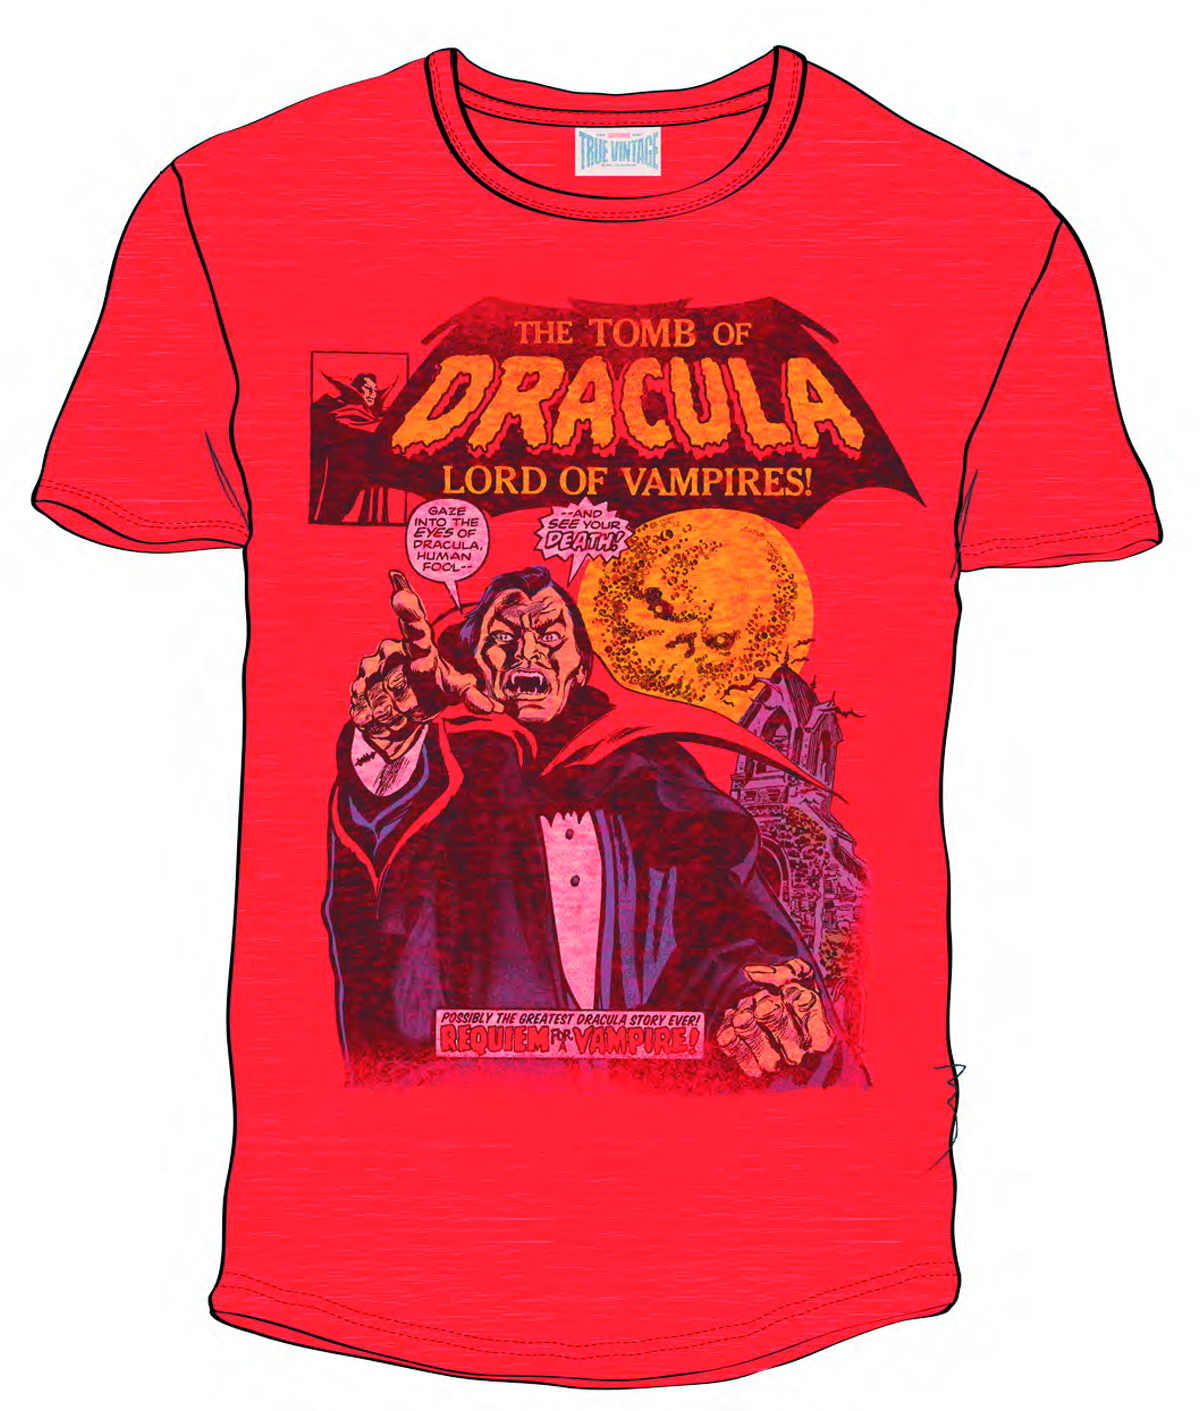 TOMB OF DRACULA PX RED T/S LG